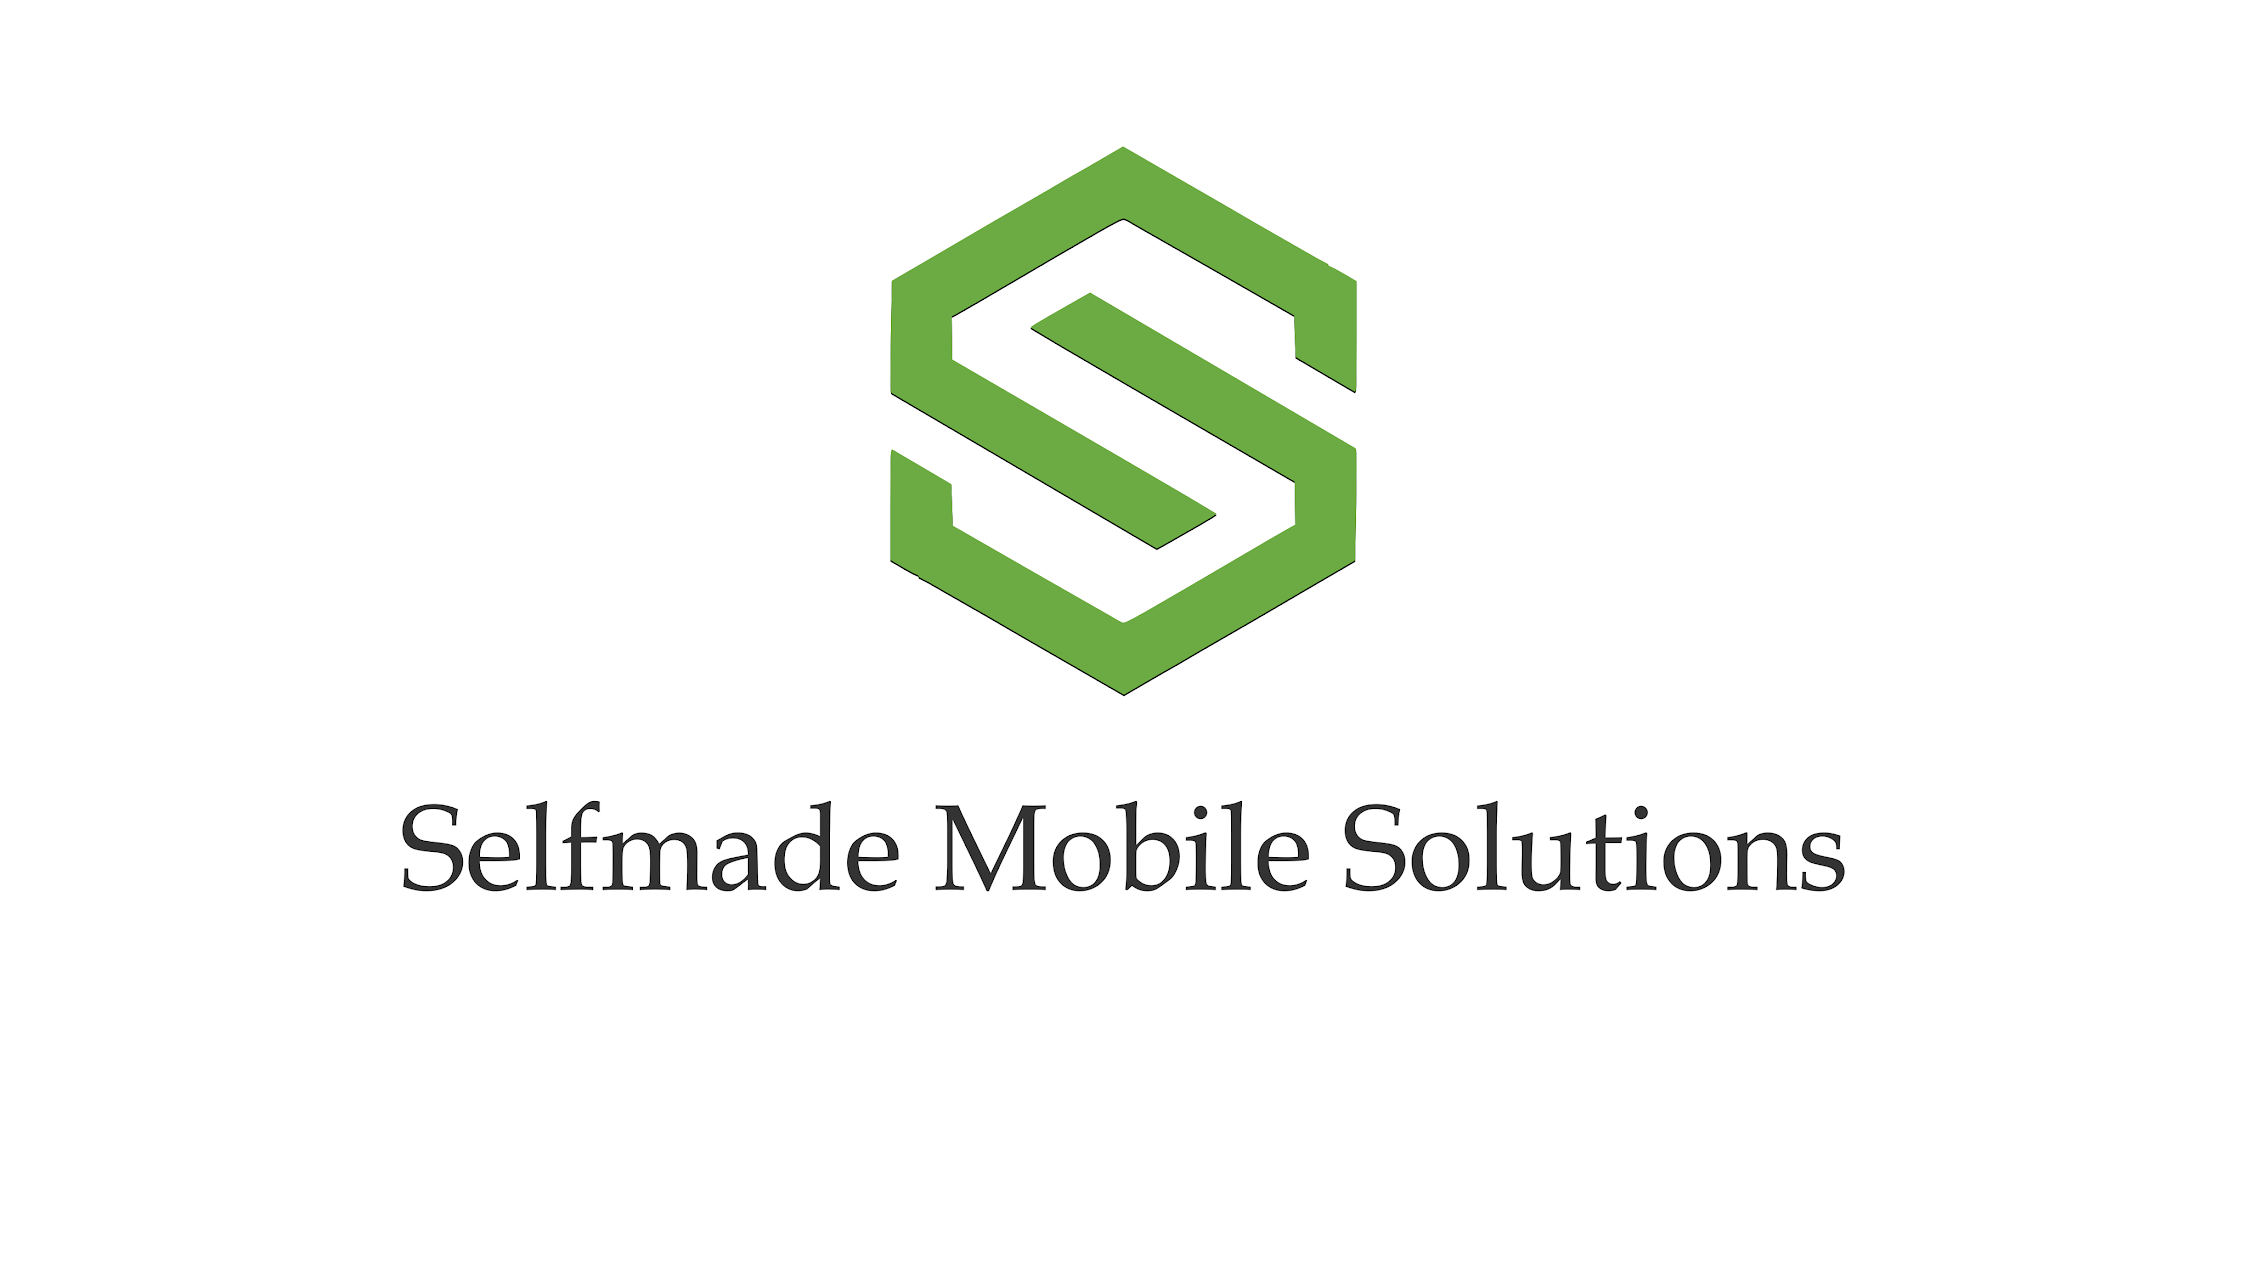 Selfmade Mobile Solutions